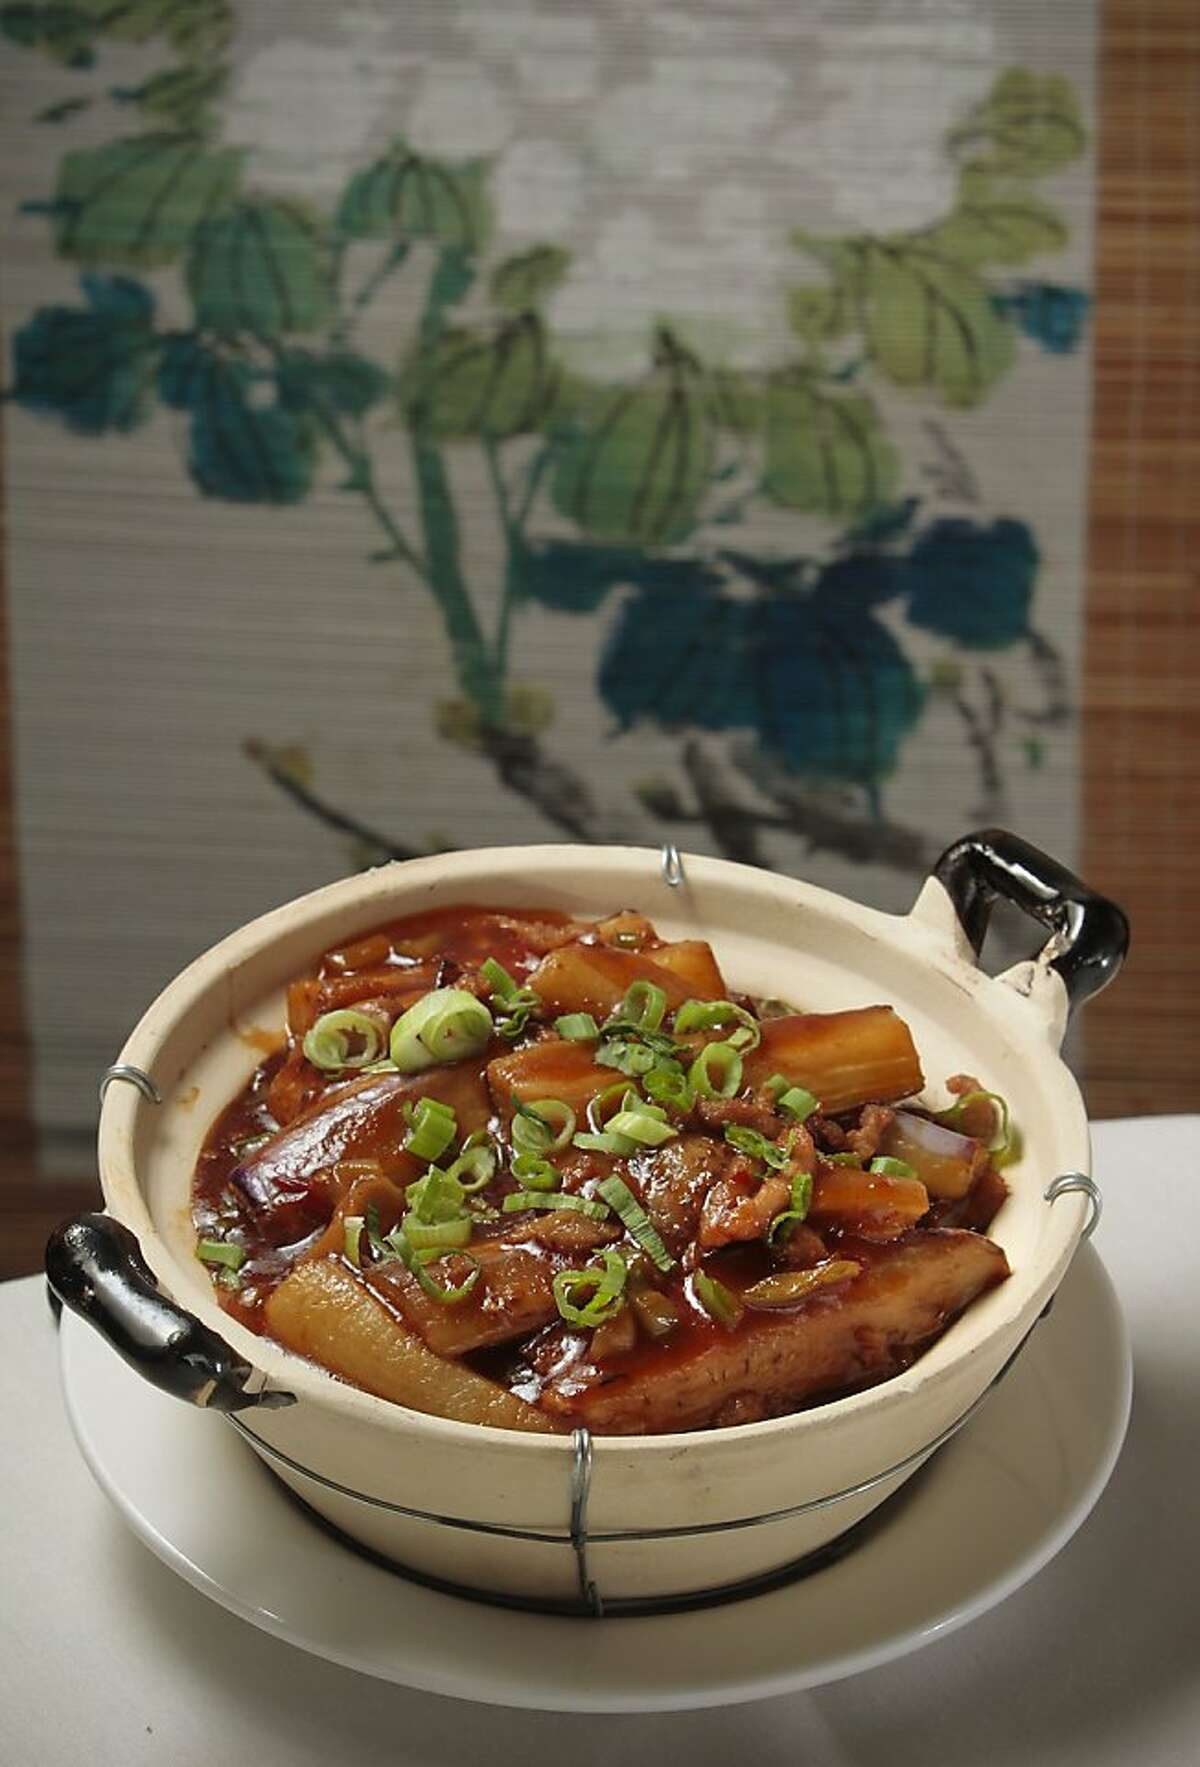 The Eggplant in a clay Pot at the East Ocean Seafood Restaurant in Alameda, Calif. is seen on June 3rd, 2011.